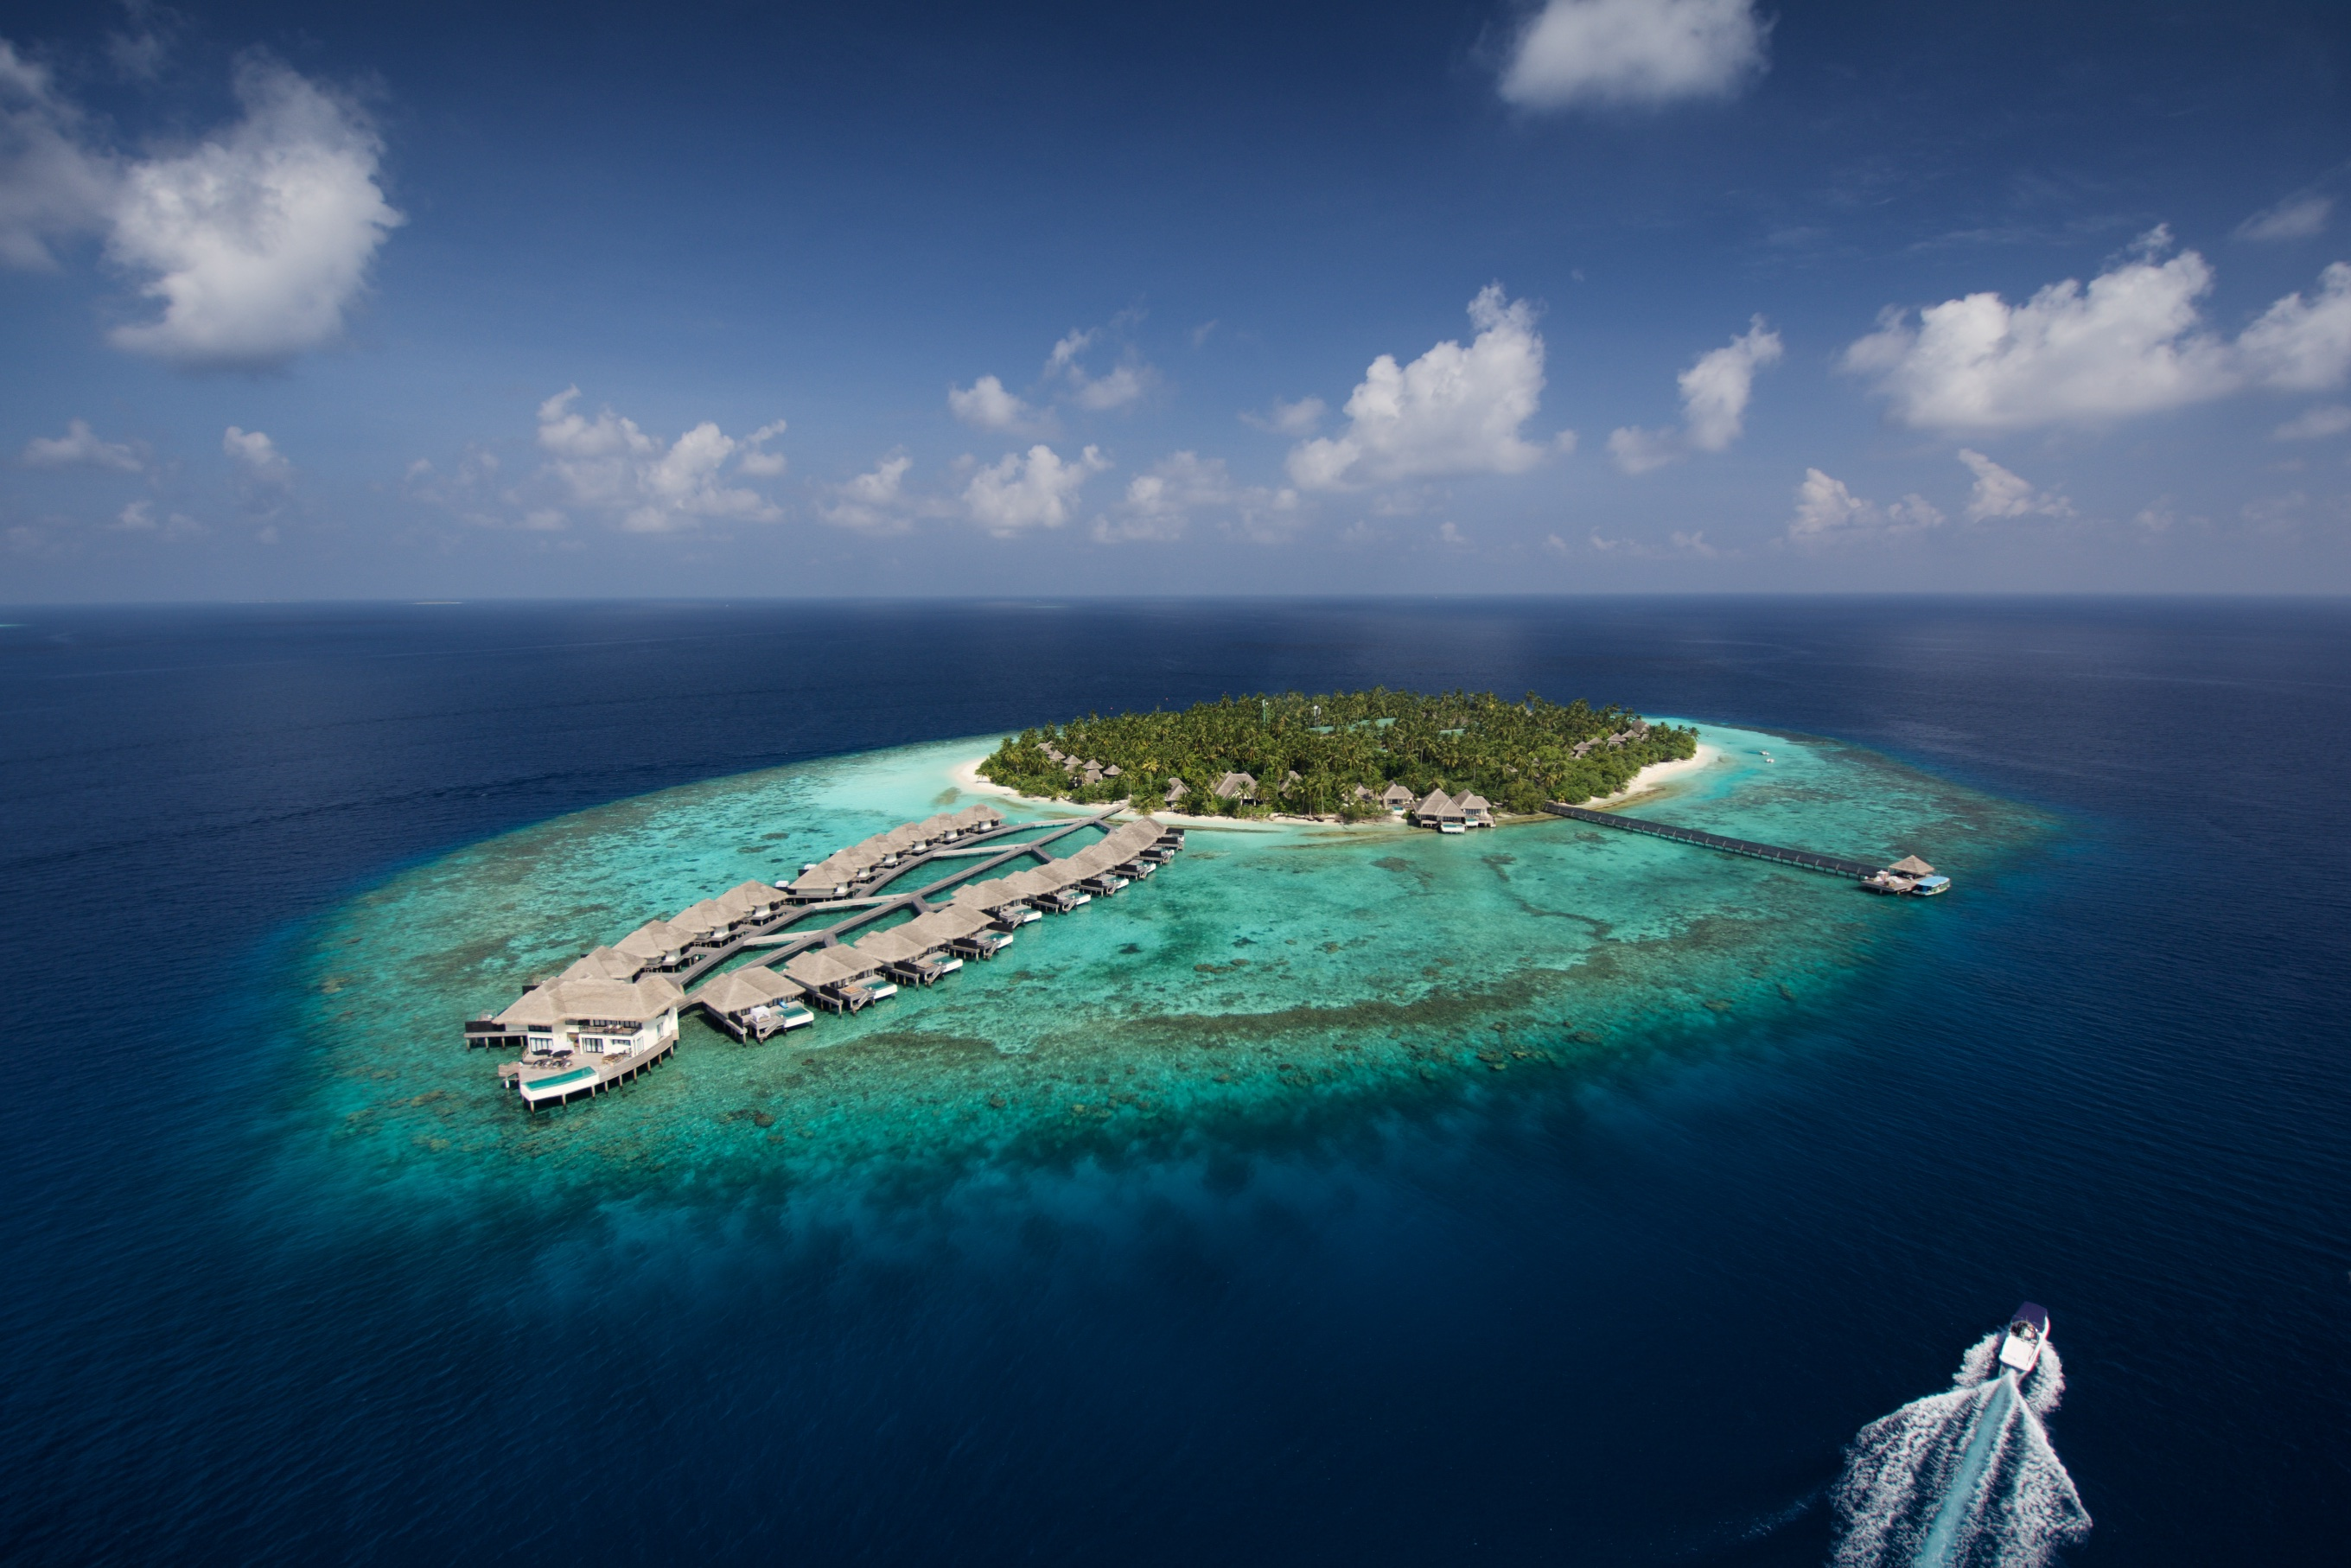 maldives essay Free essay: introduction land area of 298 sq km and is made up of 1,192 islands is situated in the indian ocean forecasts of maldives' inundation are a.